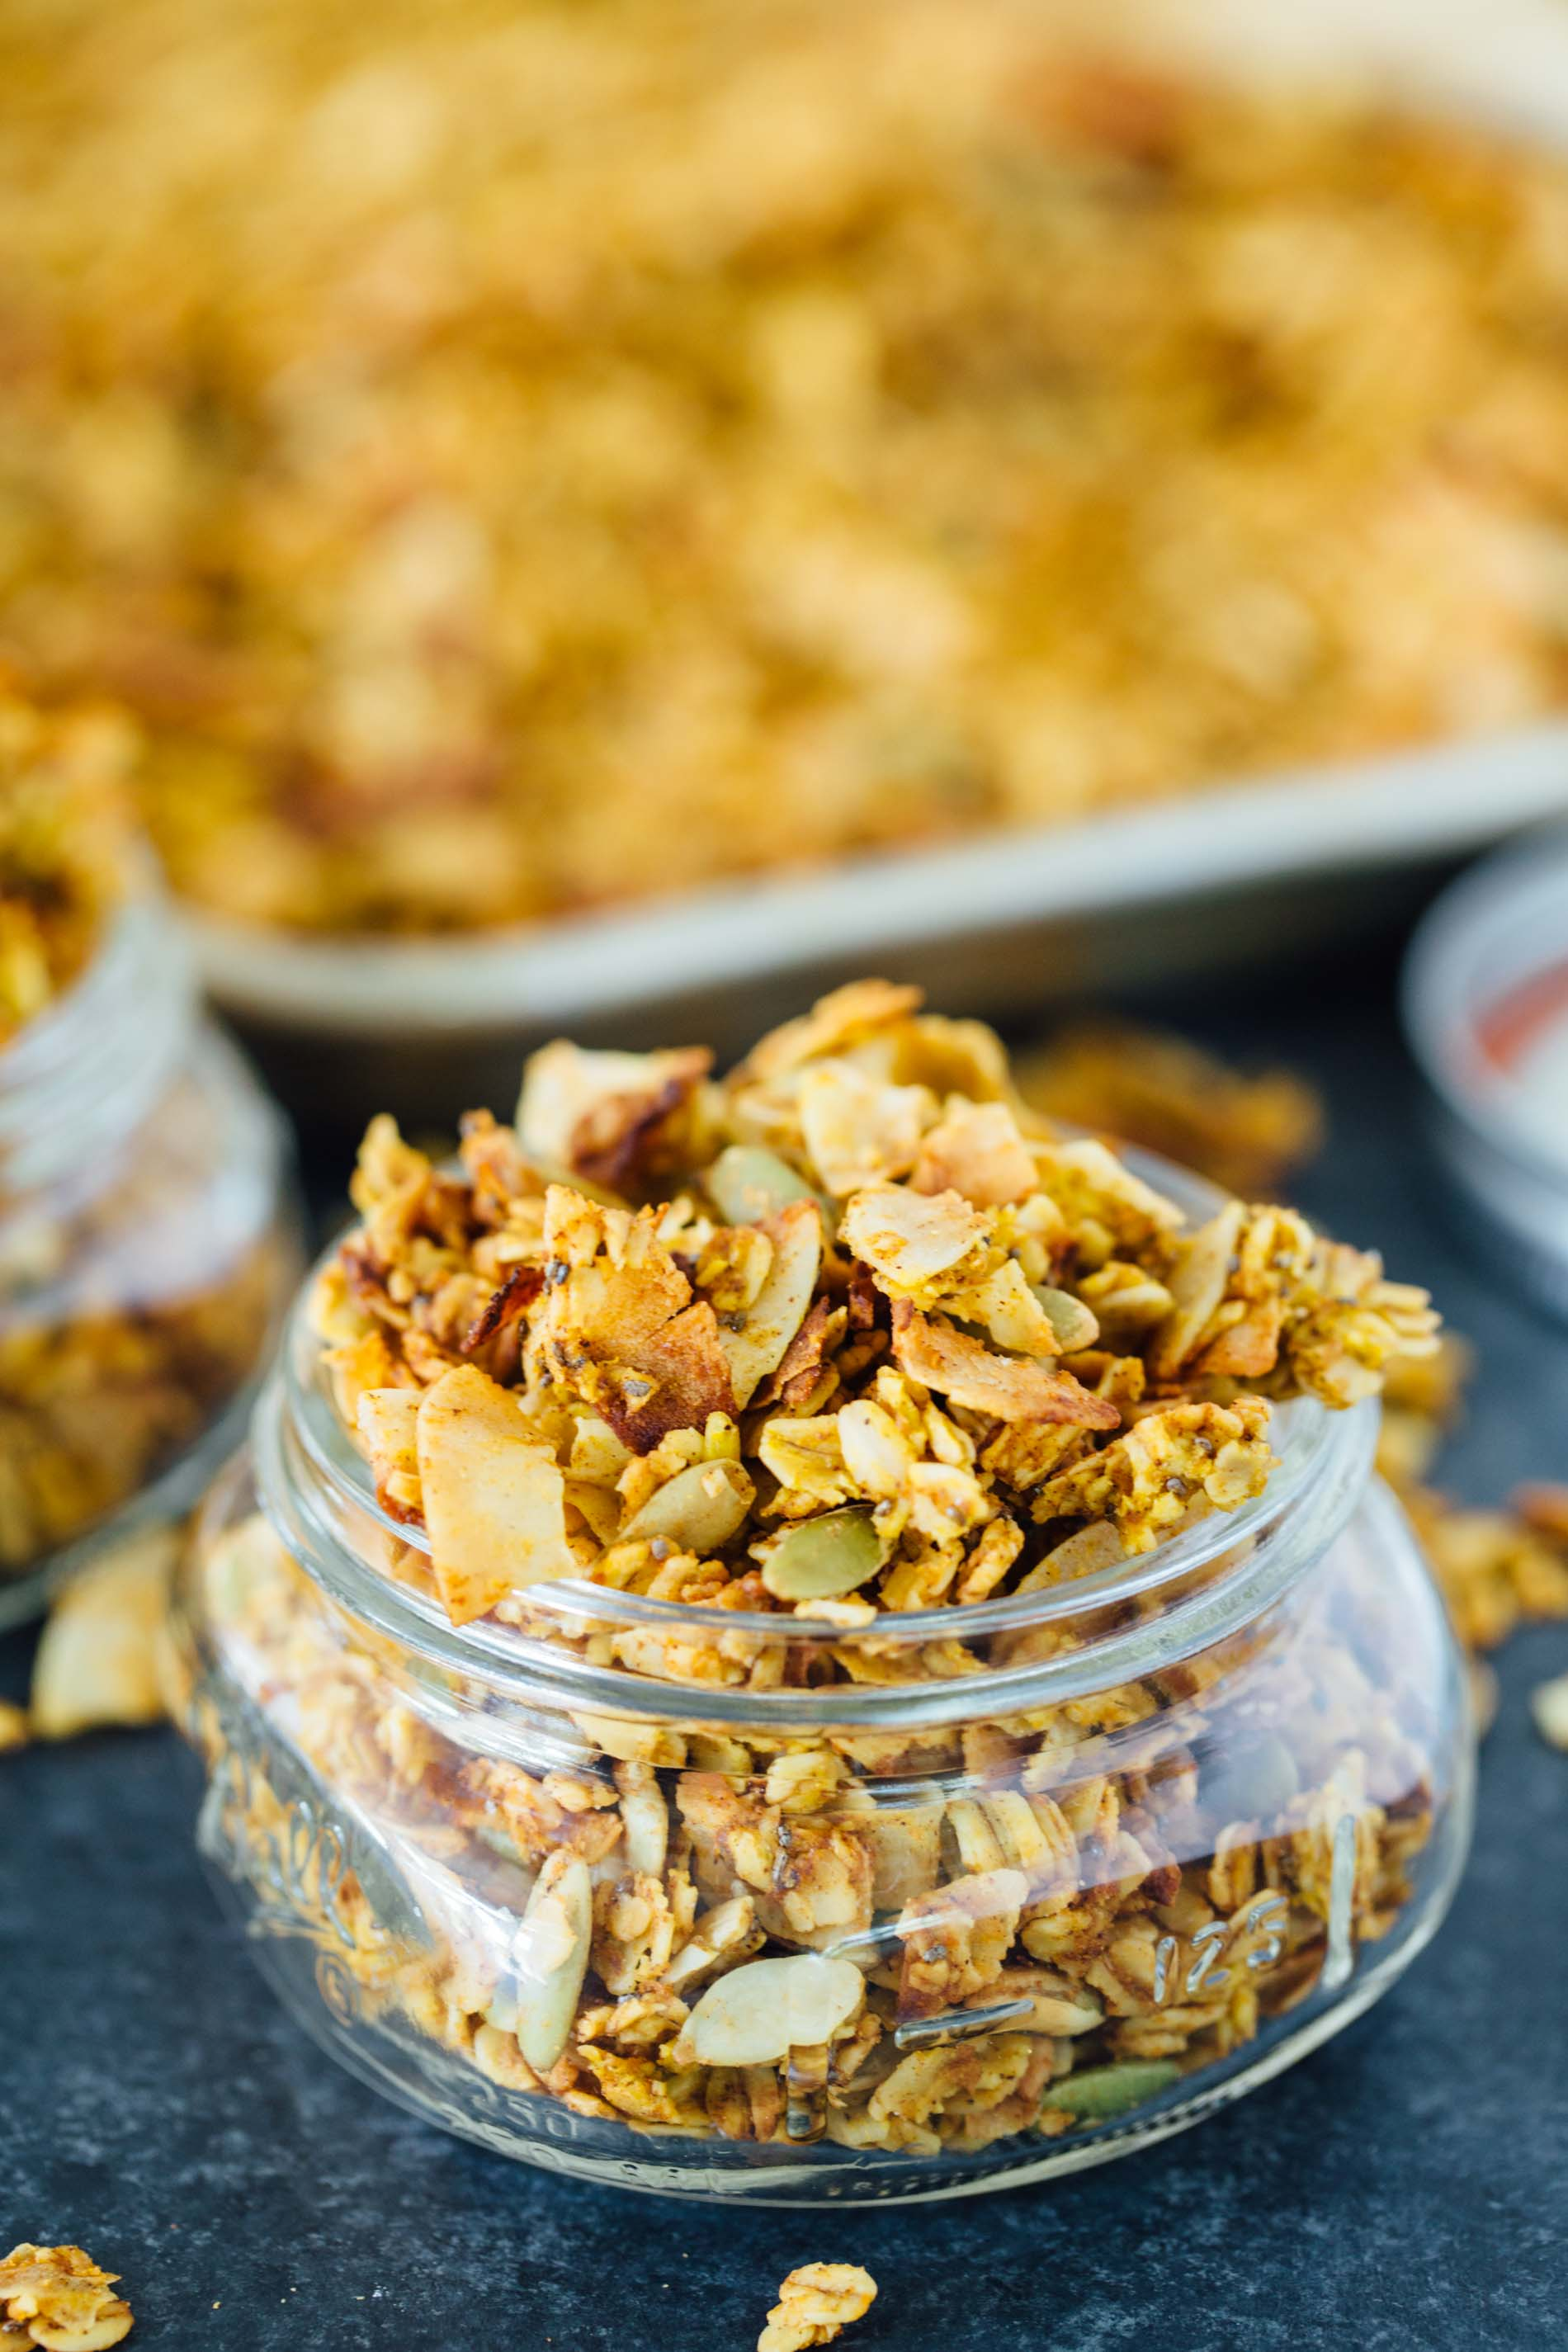 This pumpkin coconut granola has all the flavors of Fall in this sweet and salty combination! It's perfect to top on plain yogurt, oats, or even with milk!